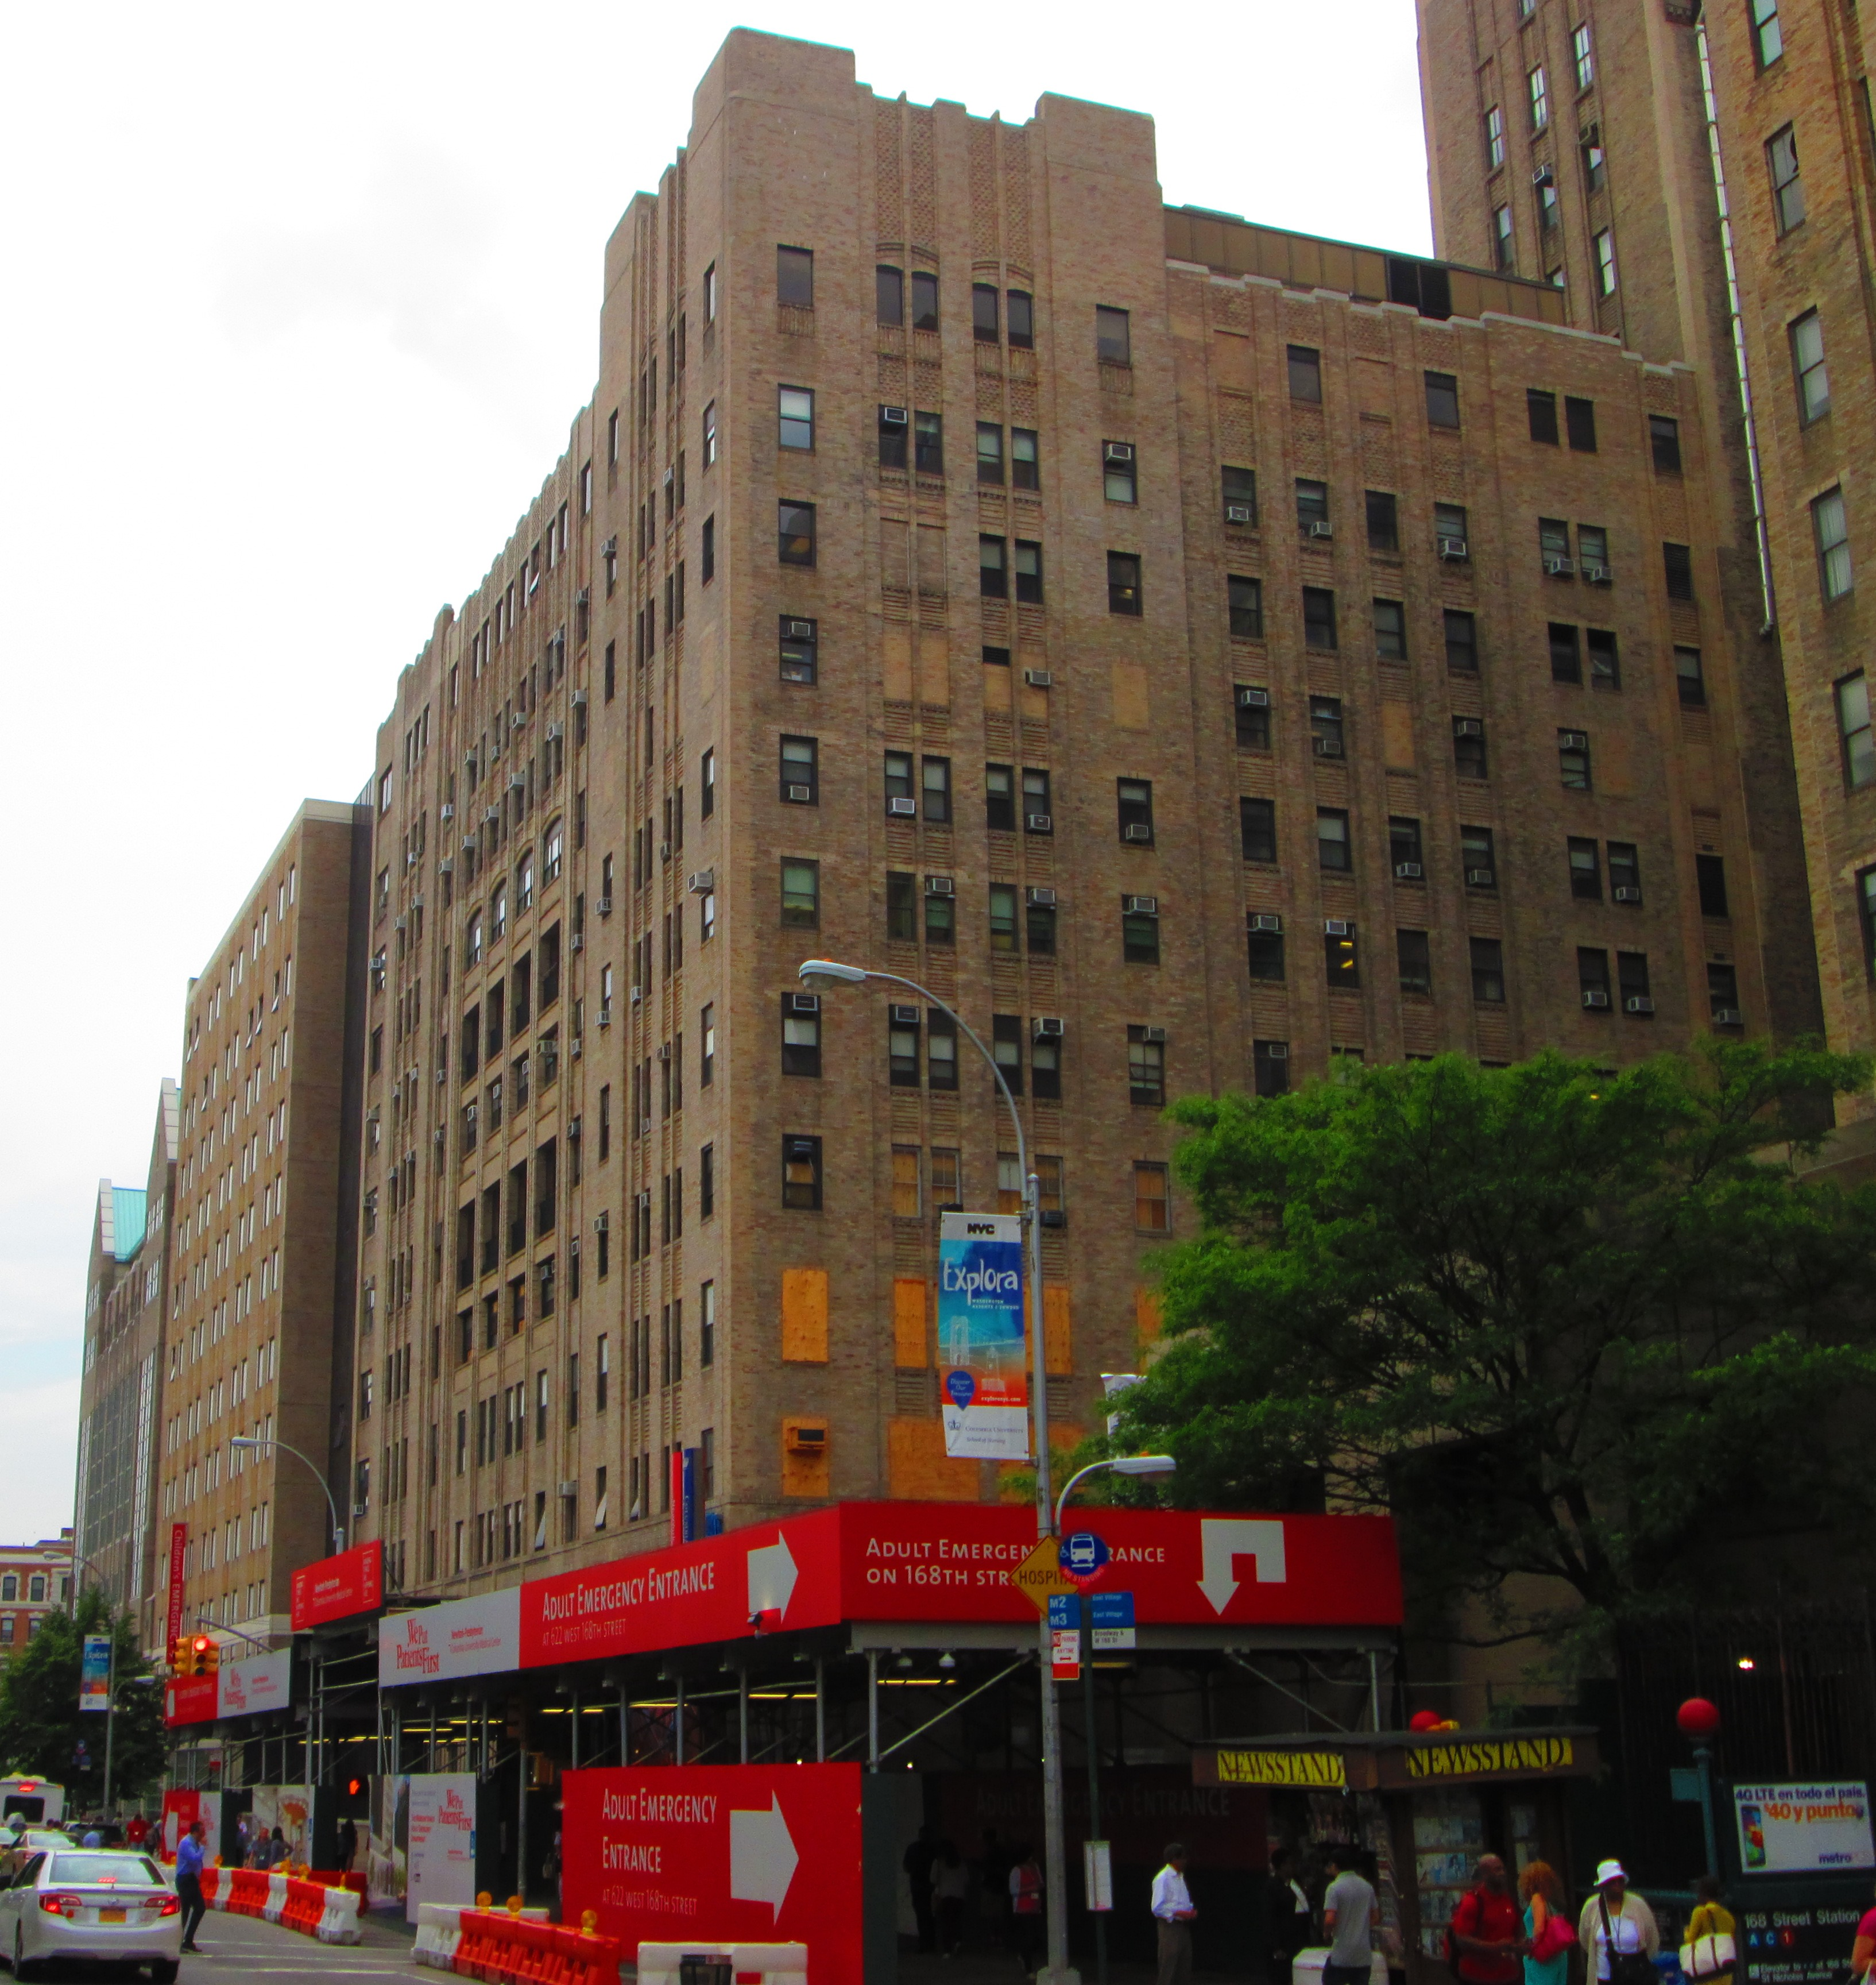 FileColumbia University Medical Center Buildings On Broadway Below West 167th Street